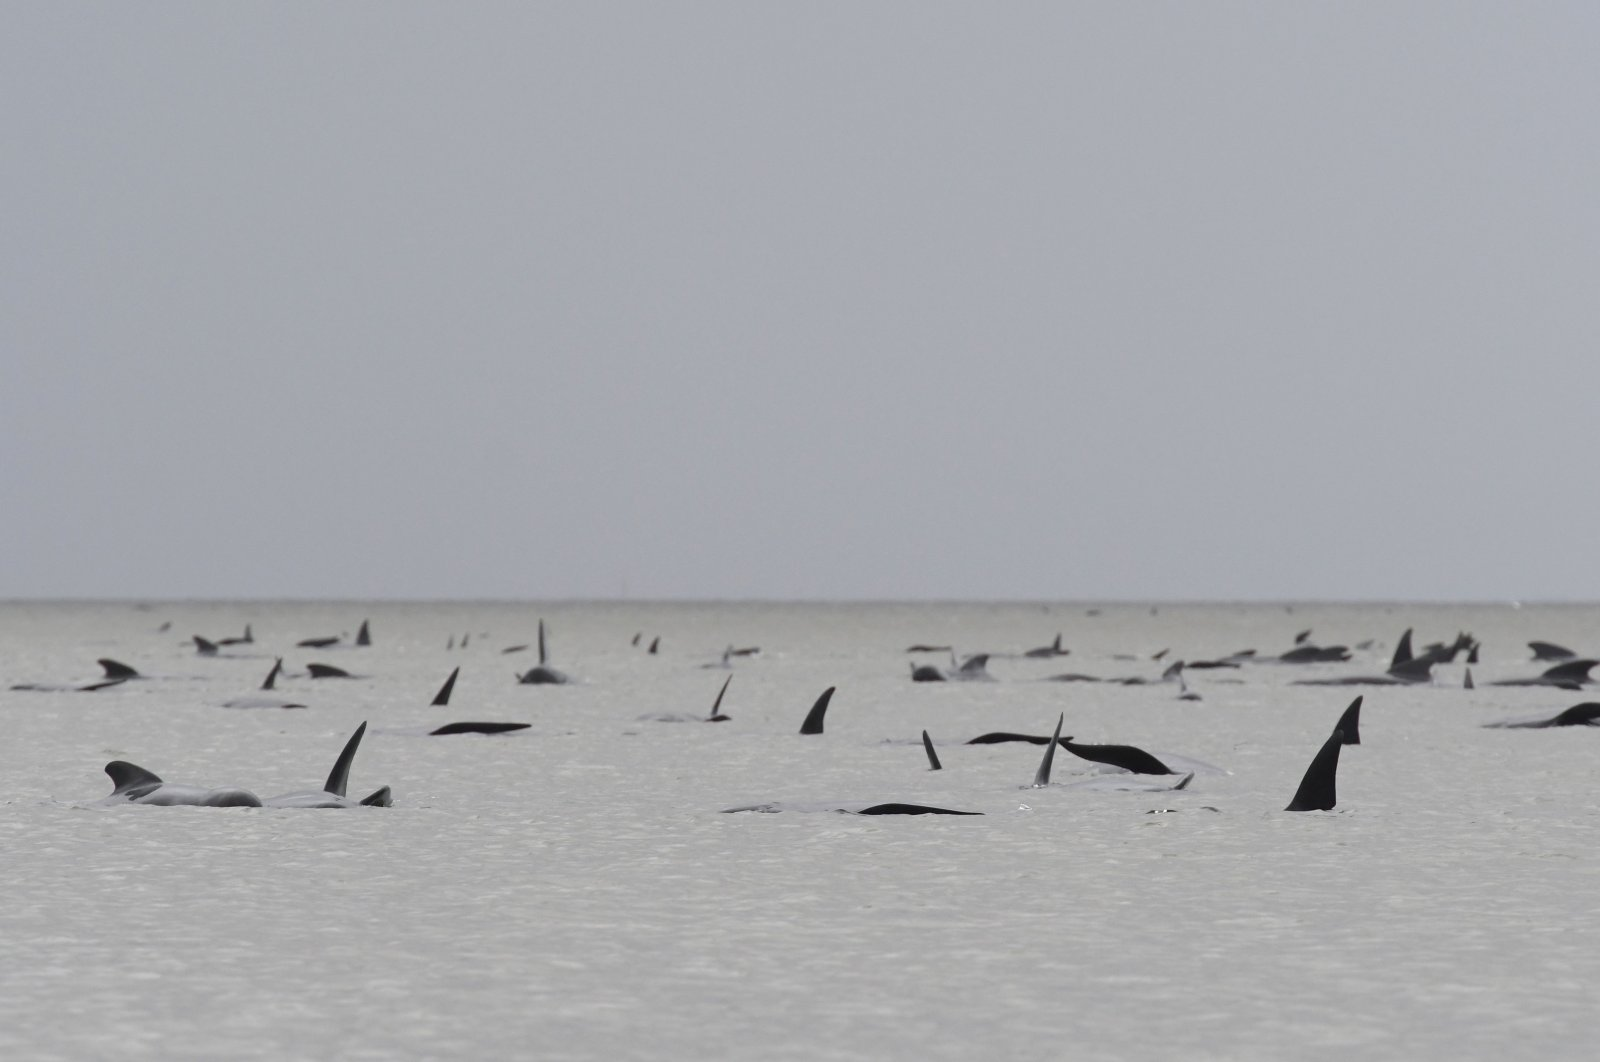 A pod of whales seen stranded on a sandbar in Macquarie Harbour on the rugged west coast of Tasmania, Australia, Sept. 22, 2020. (AFP/Brodie Weeding/The Advocate)